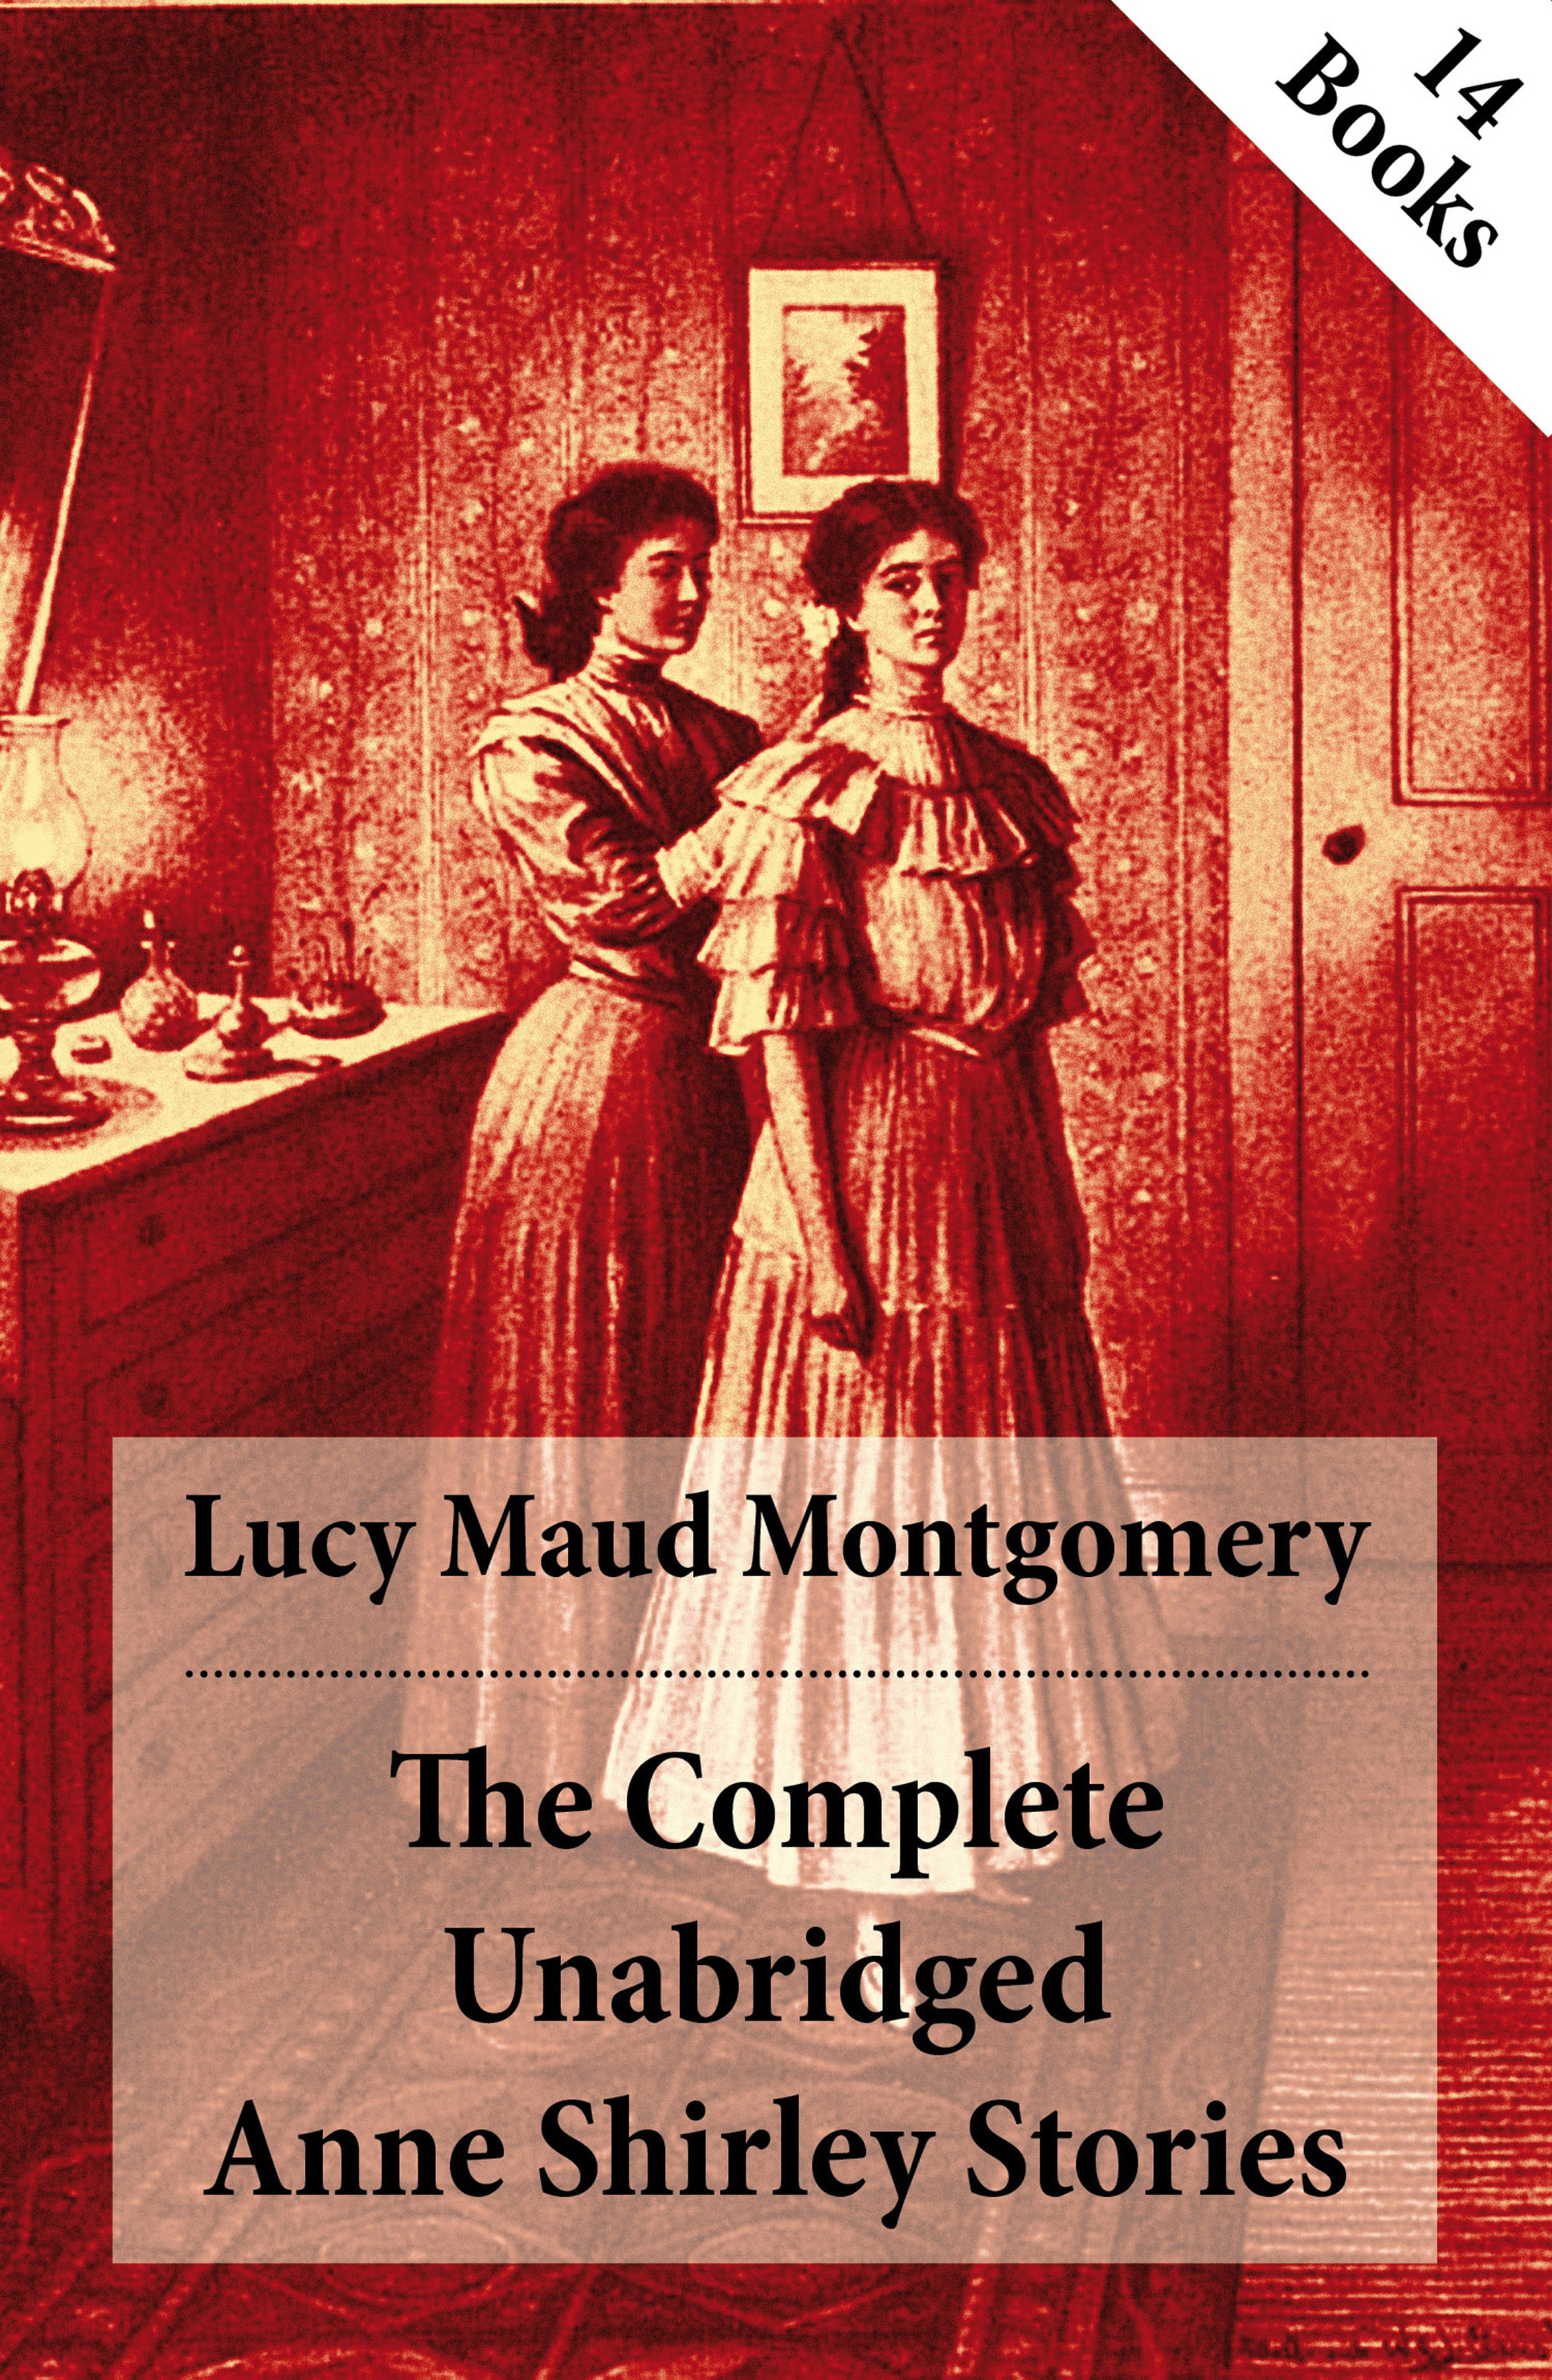 Lucy Maud Montgomery The Complete Unabridged Anne Shirley Stories: 14 Books: Anne of Green Gables, Anne of Avonlea, Anne of the Island, Anne's House of Dreams, Rainbow Valley, Rilla of Ingleside, Chronicles of Avonlea, Anne of Windy Poplars, Anne of Ingleside etc. marquis of ruvigny and raineval the plantagenet roll of the blood royal being a complete table of all the descendants now living of edward iii king of england the anne of exeter volume containing the descendants of anne plantagenet duchess of exeter